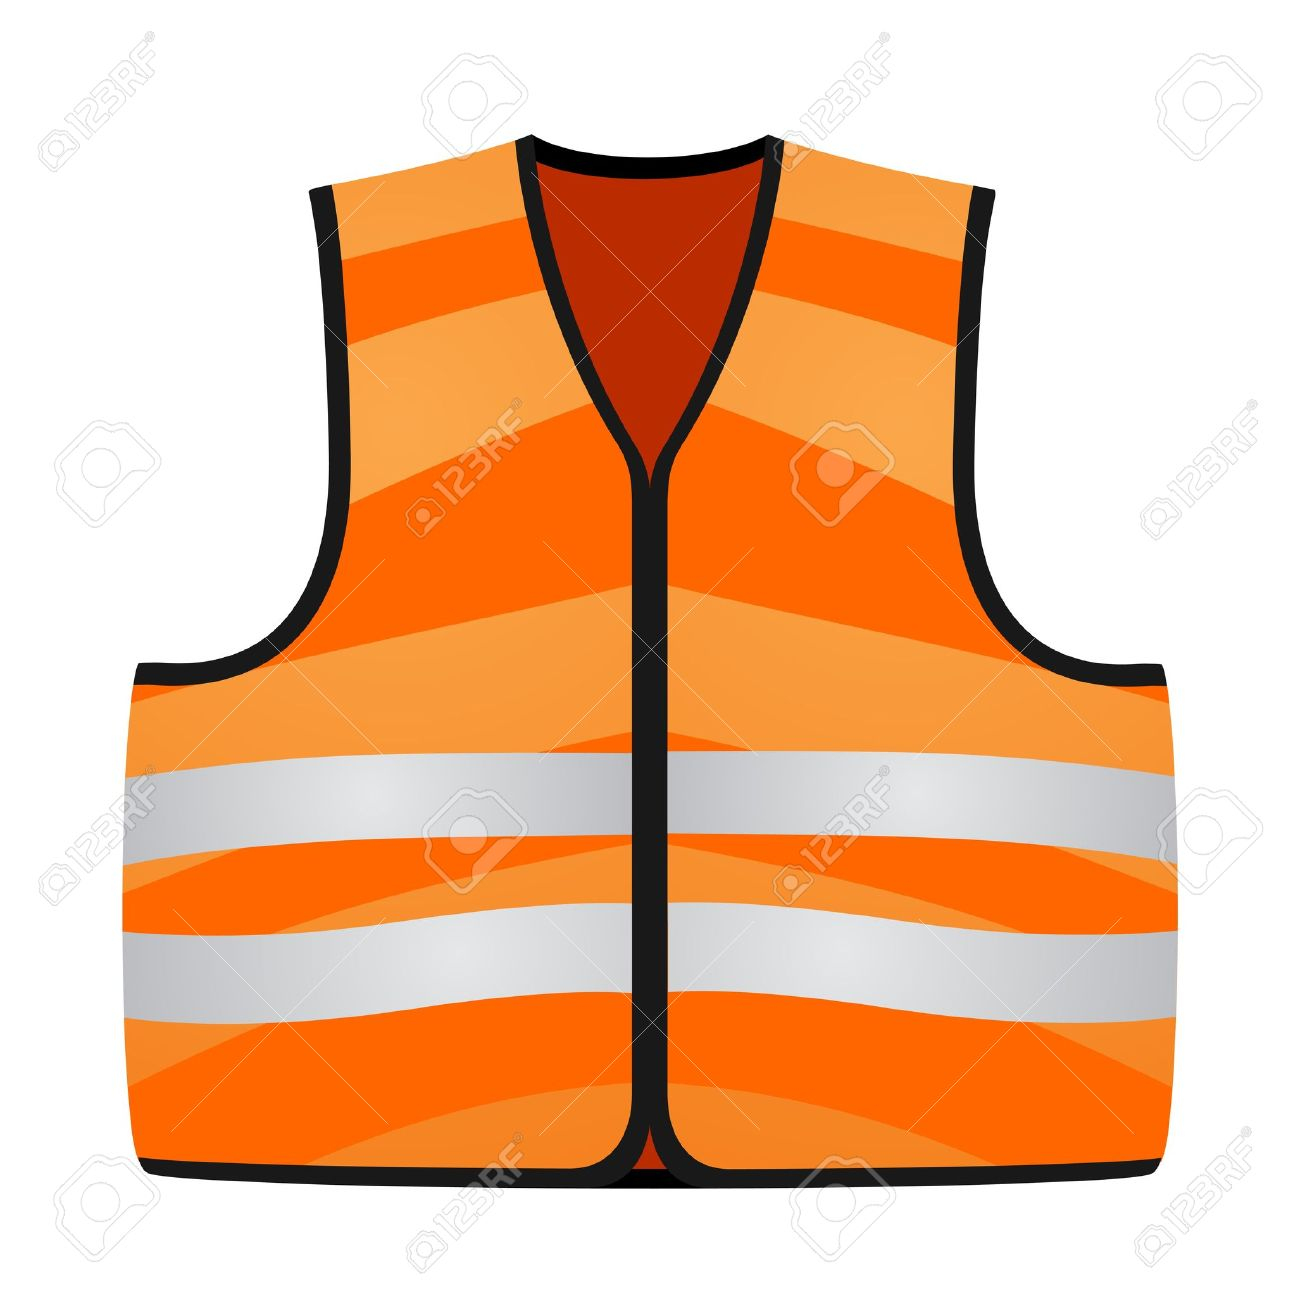 Safety Jacket Clipart 20 Free Cliparts Download Images